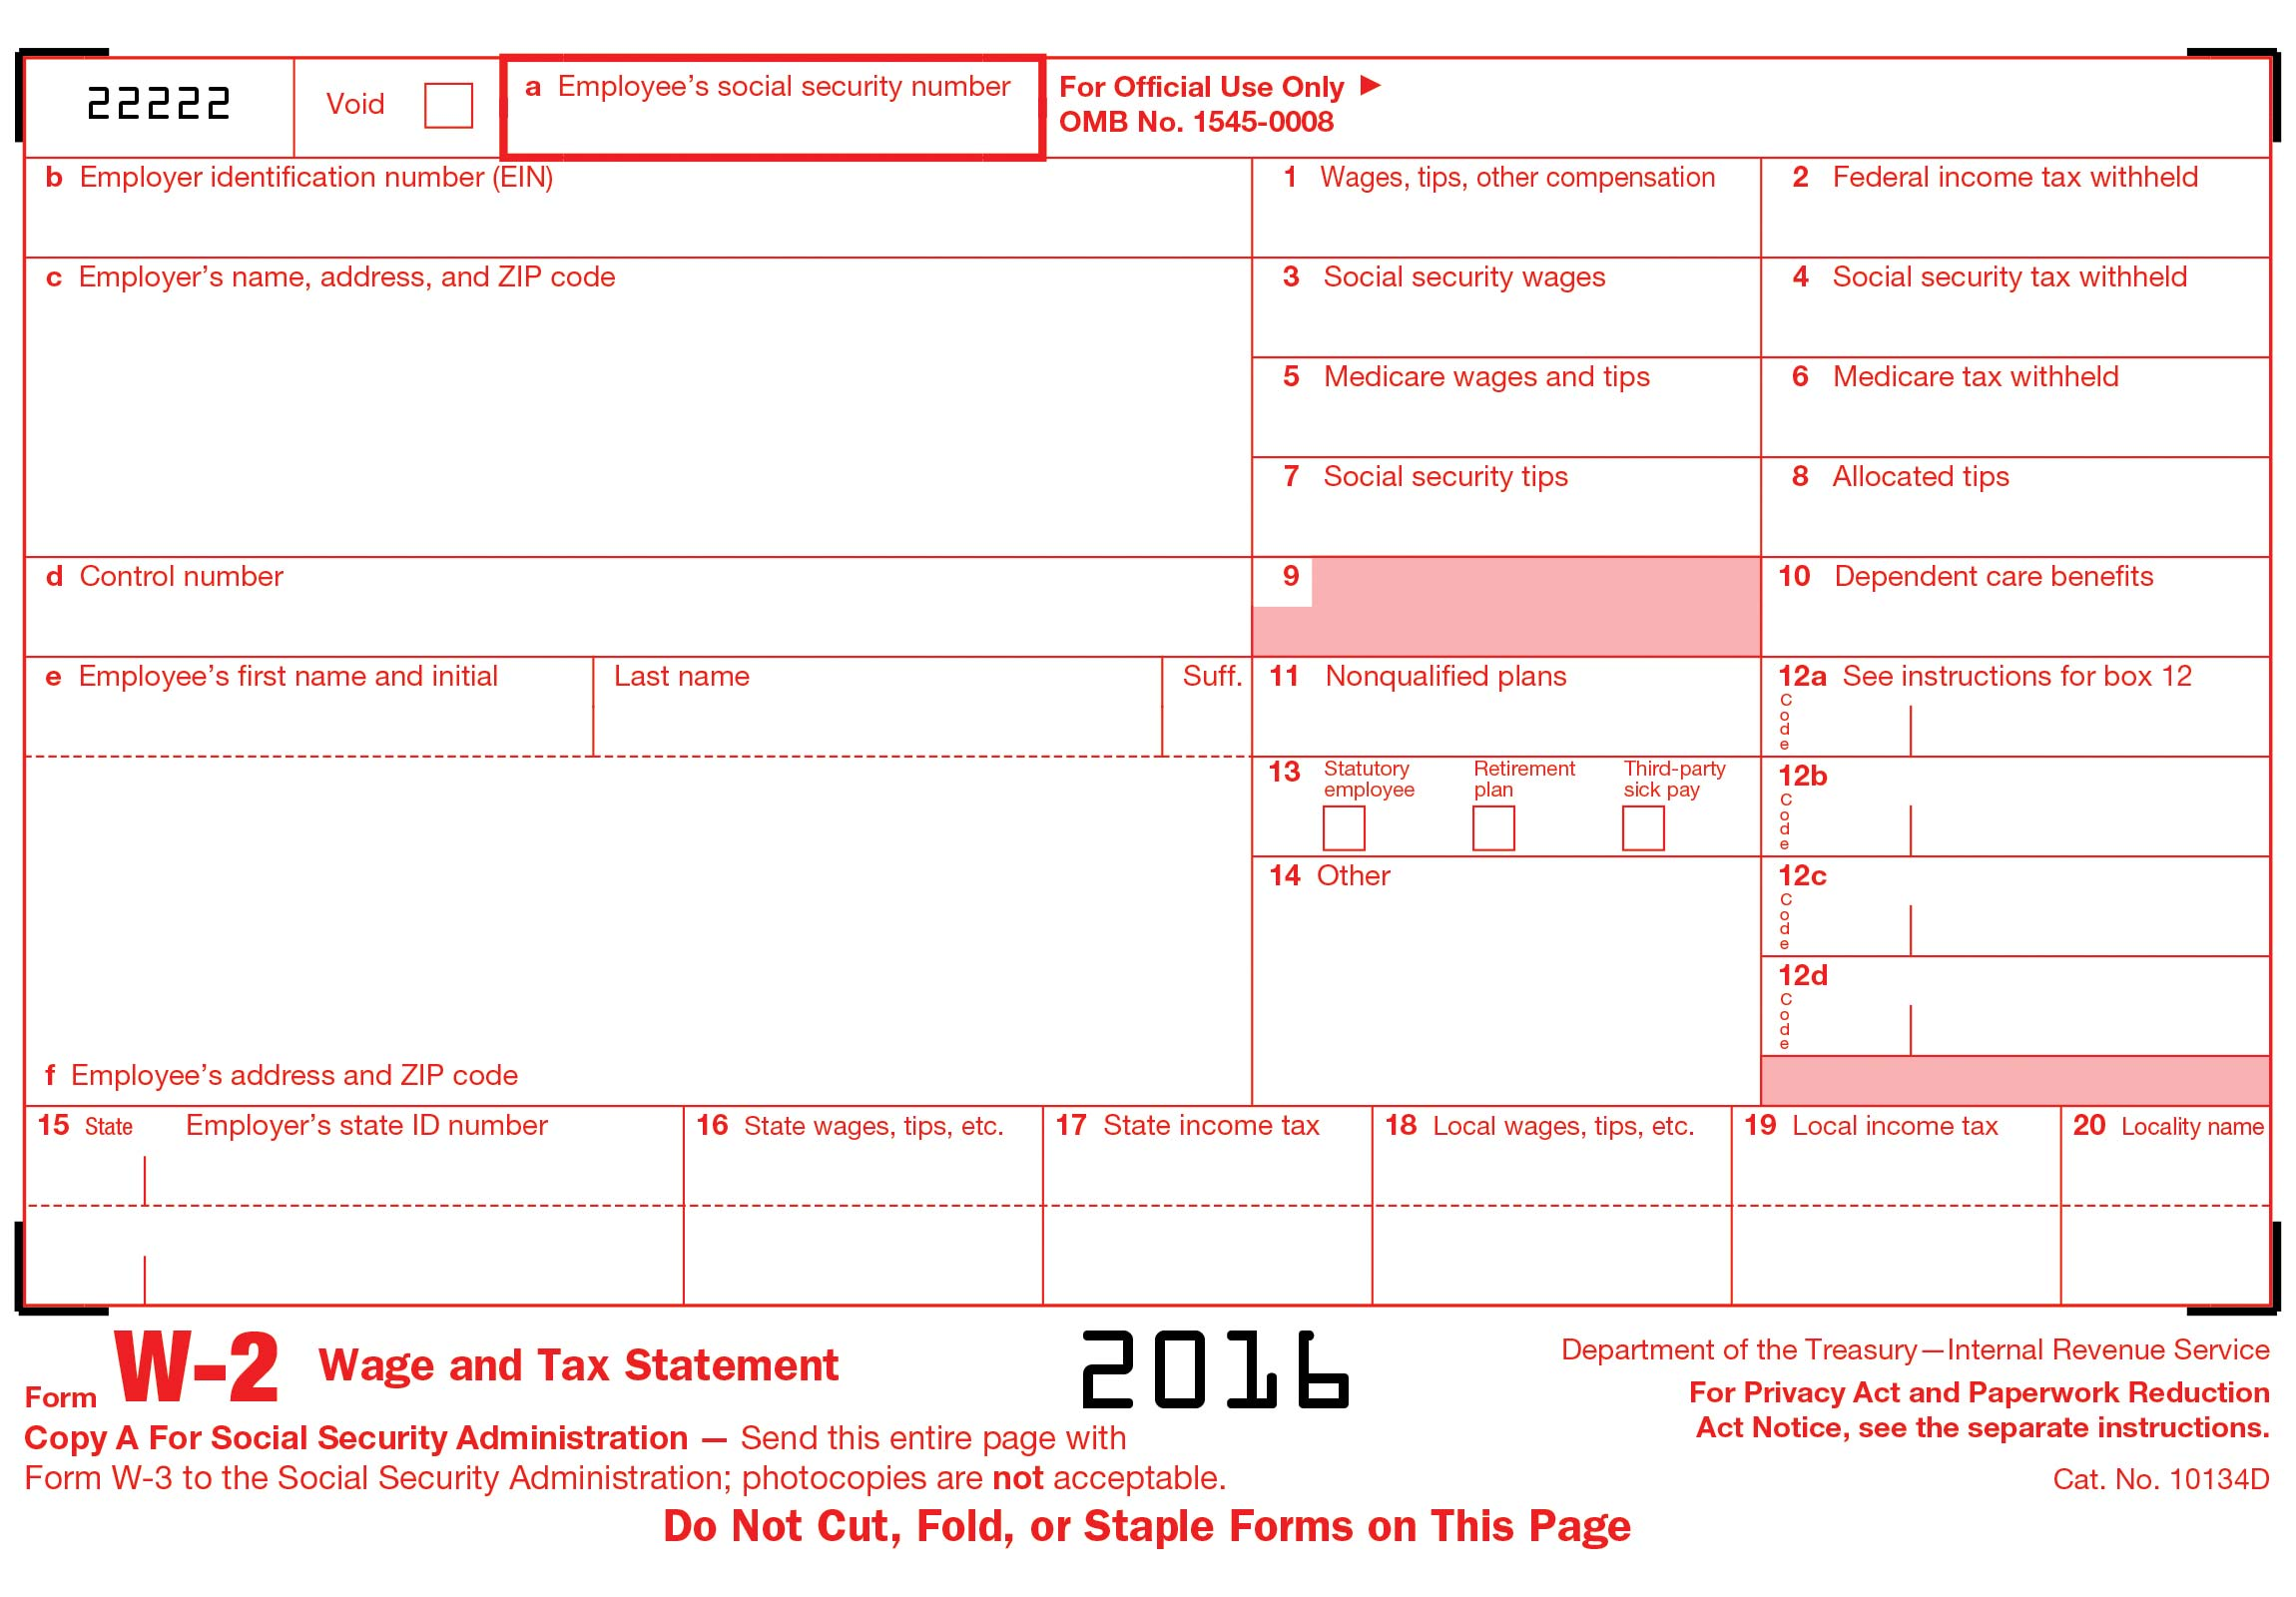 photograph regarding W2 Forms Printable named Cost-free W2 kind on the web W-2 Sort 2016 - Make printable W-2